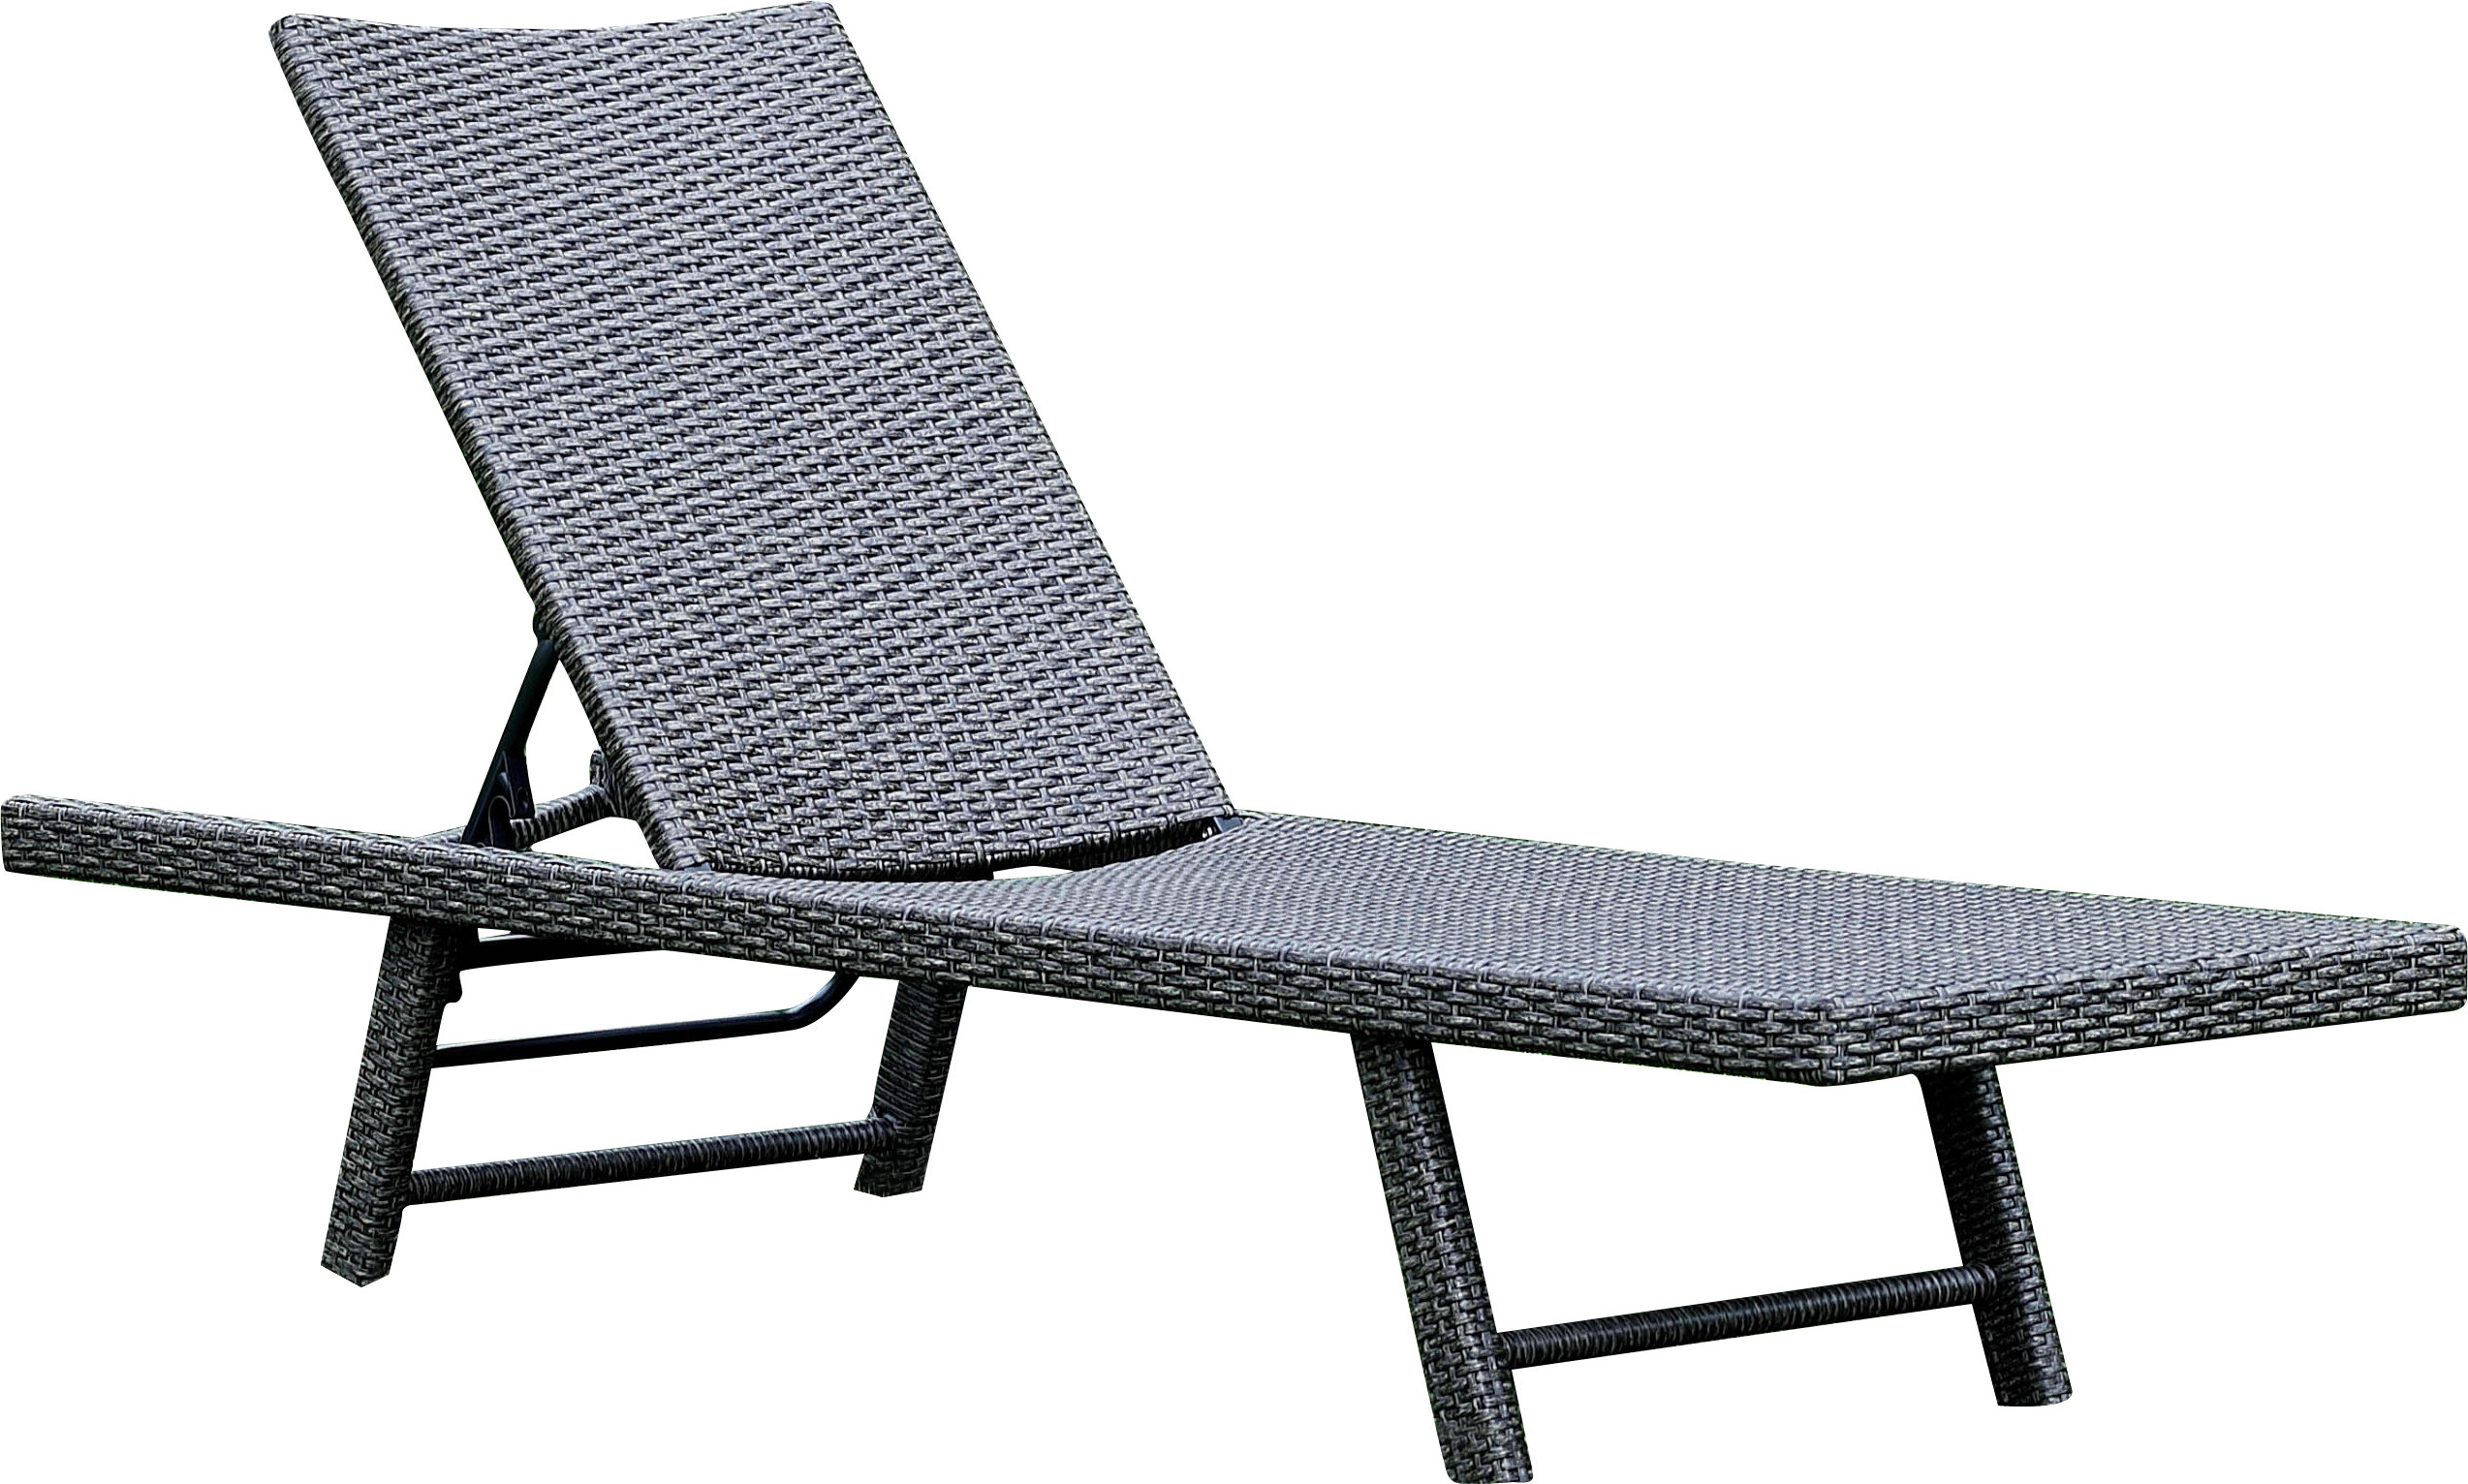 Outdoor Multi Position Chaise Lounges Throughout Most Popular Boveney Multi Position Chaise Lounge (View 18 of 25)